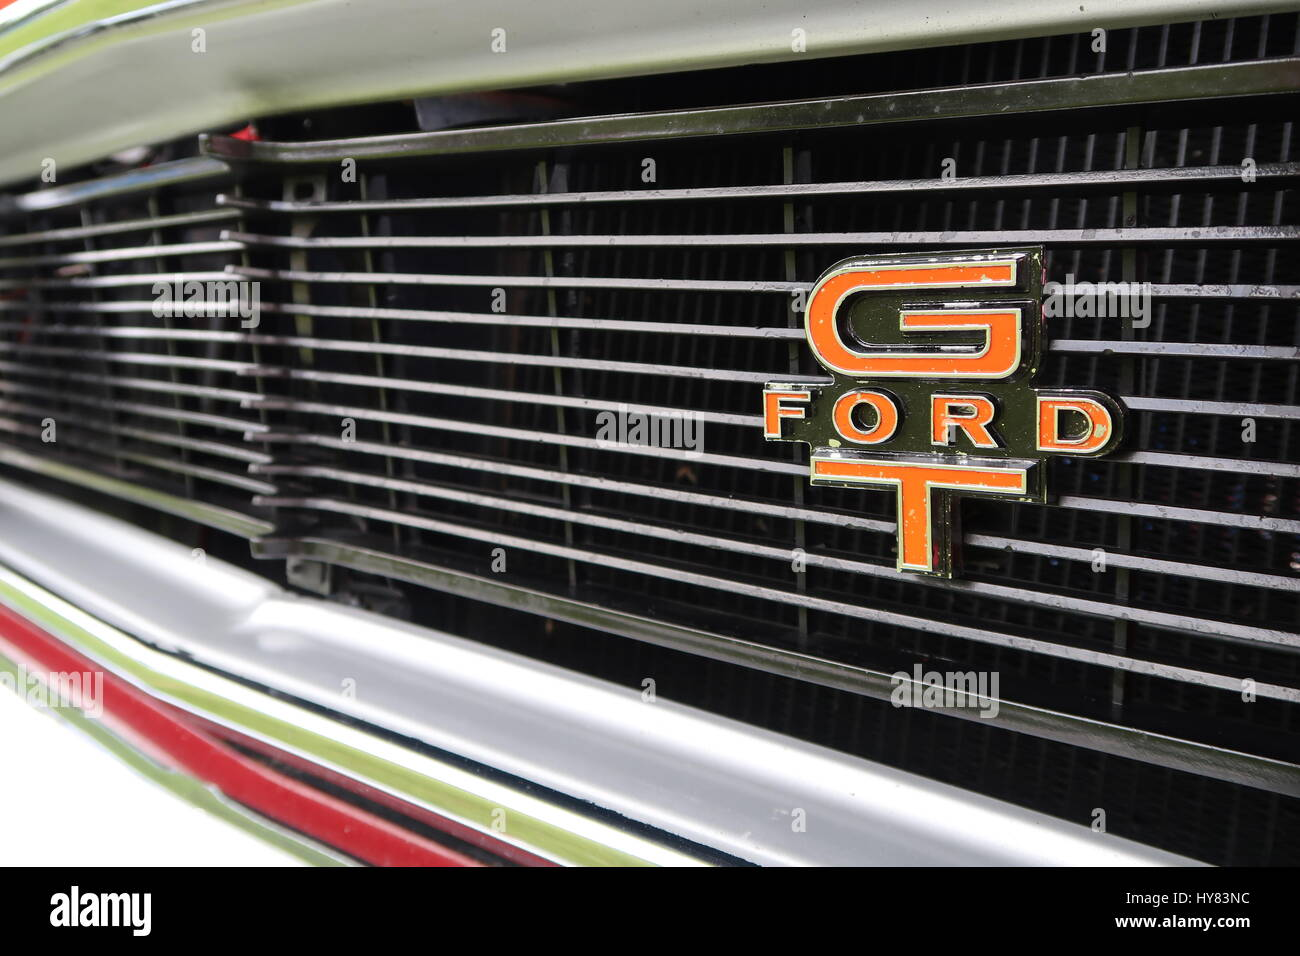 Australian Ford Gt Falcon Front Grill And Badge